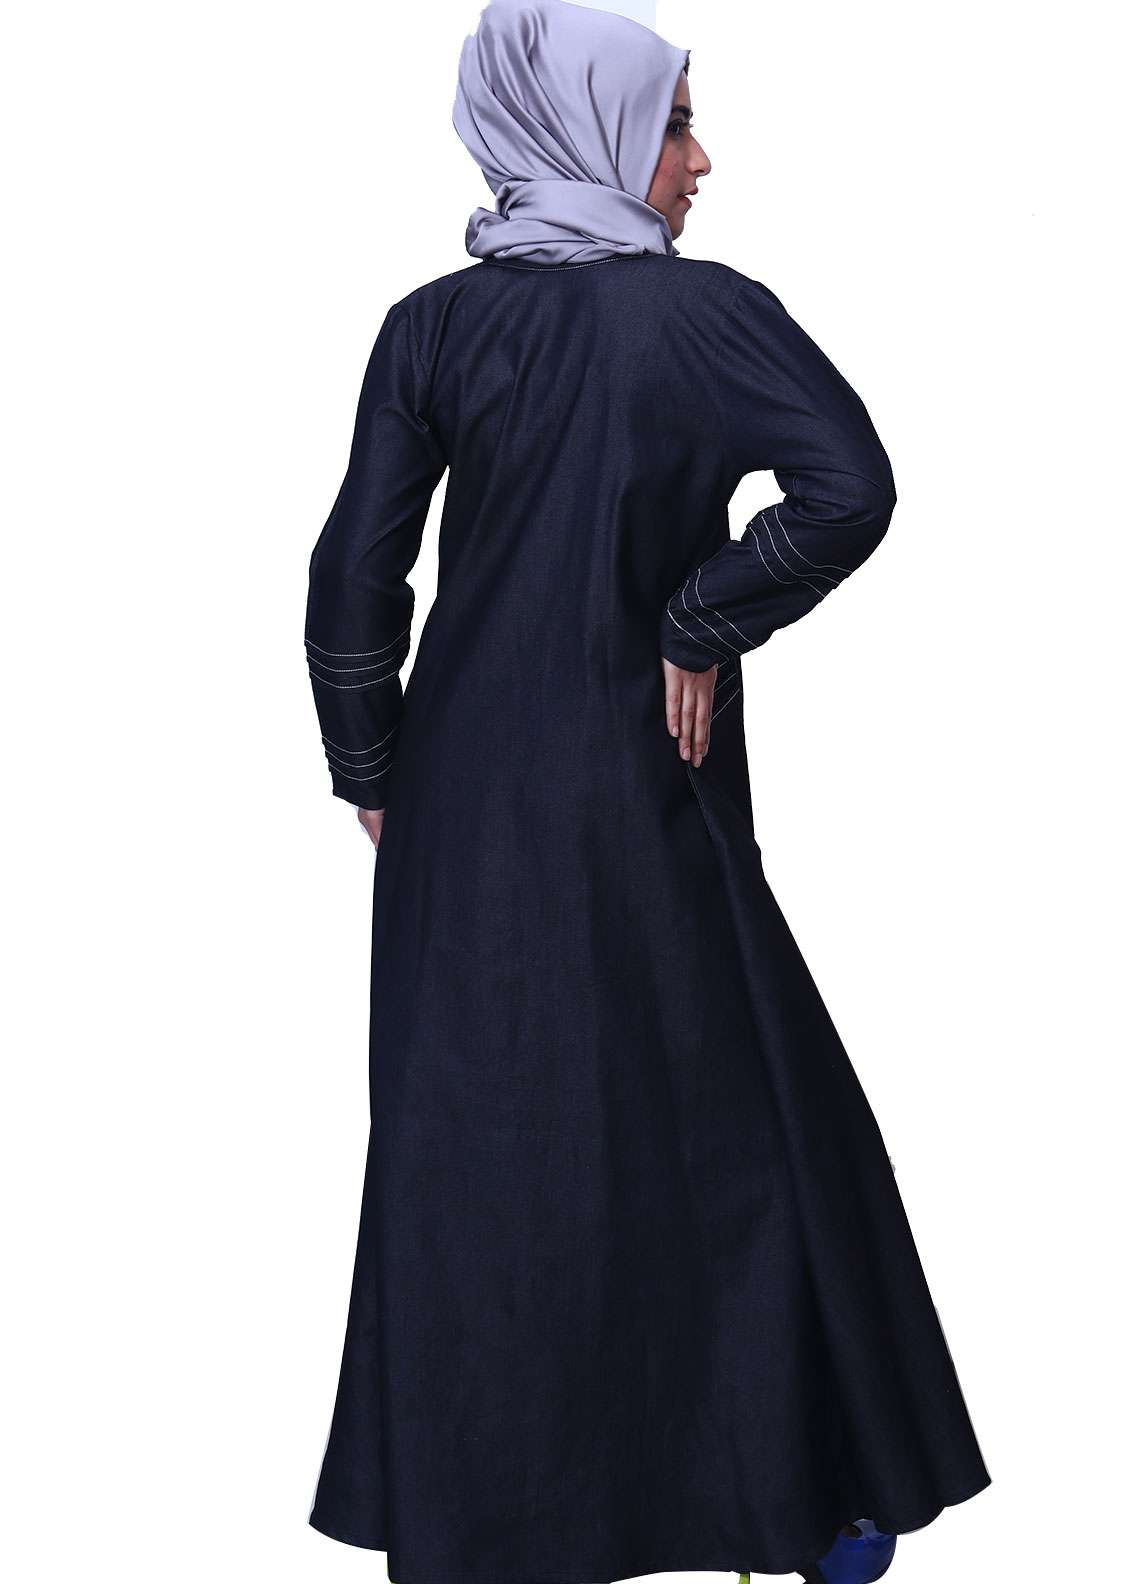 Black Denim Formal Style Abaya for Women - ABY18 012